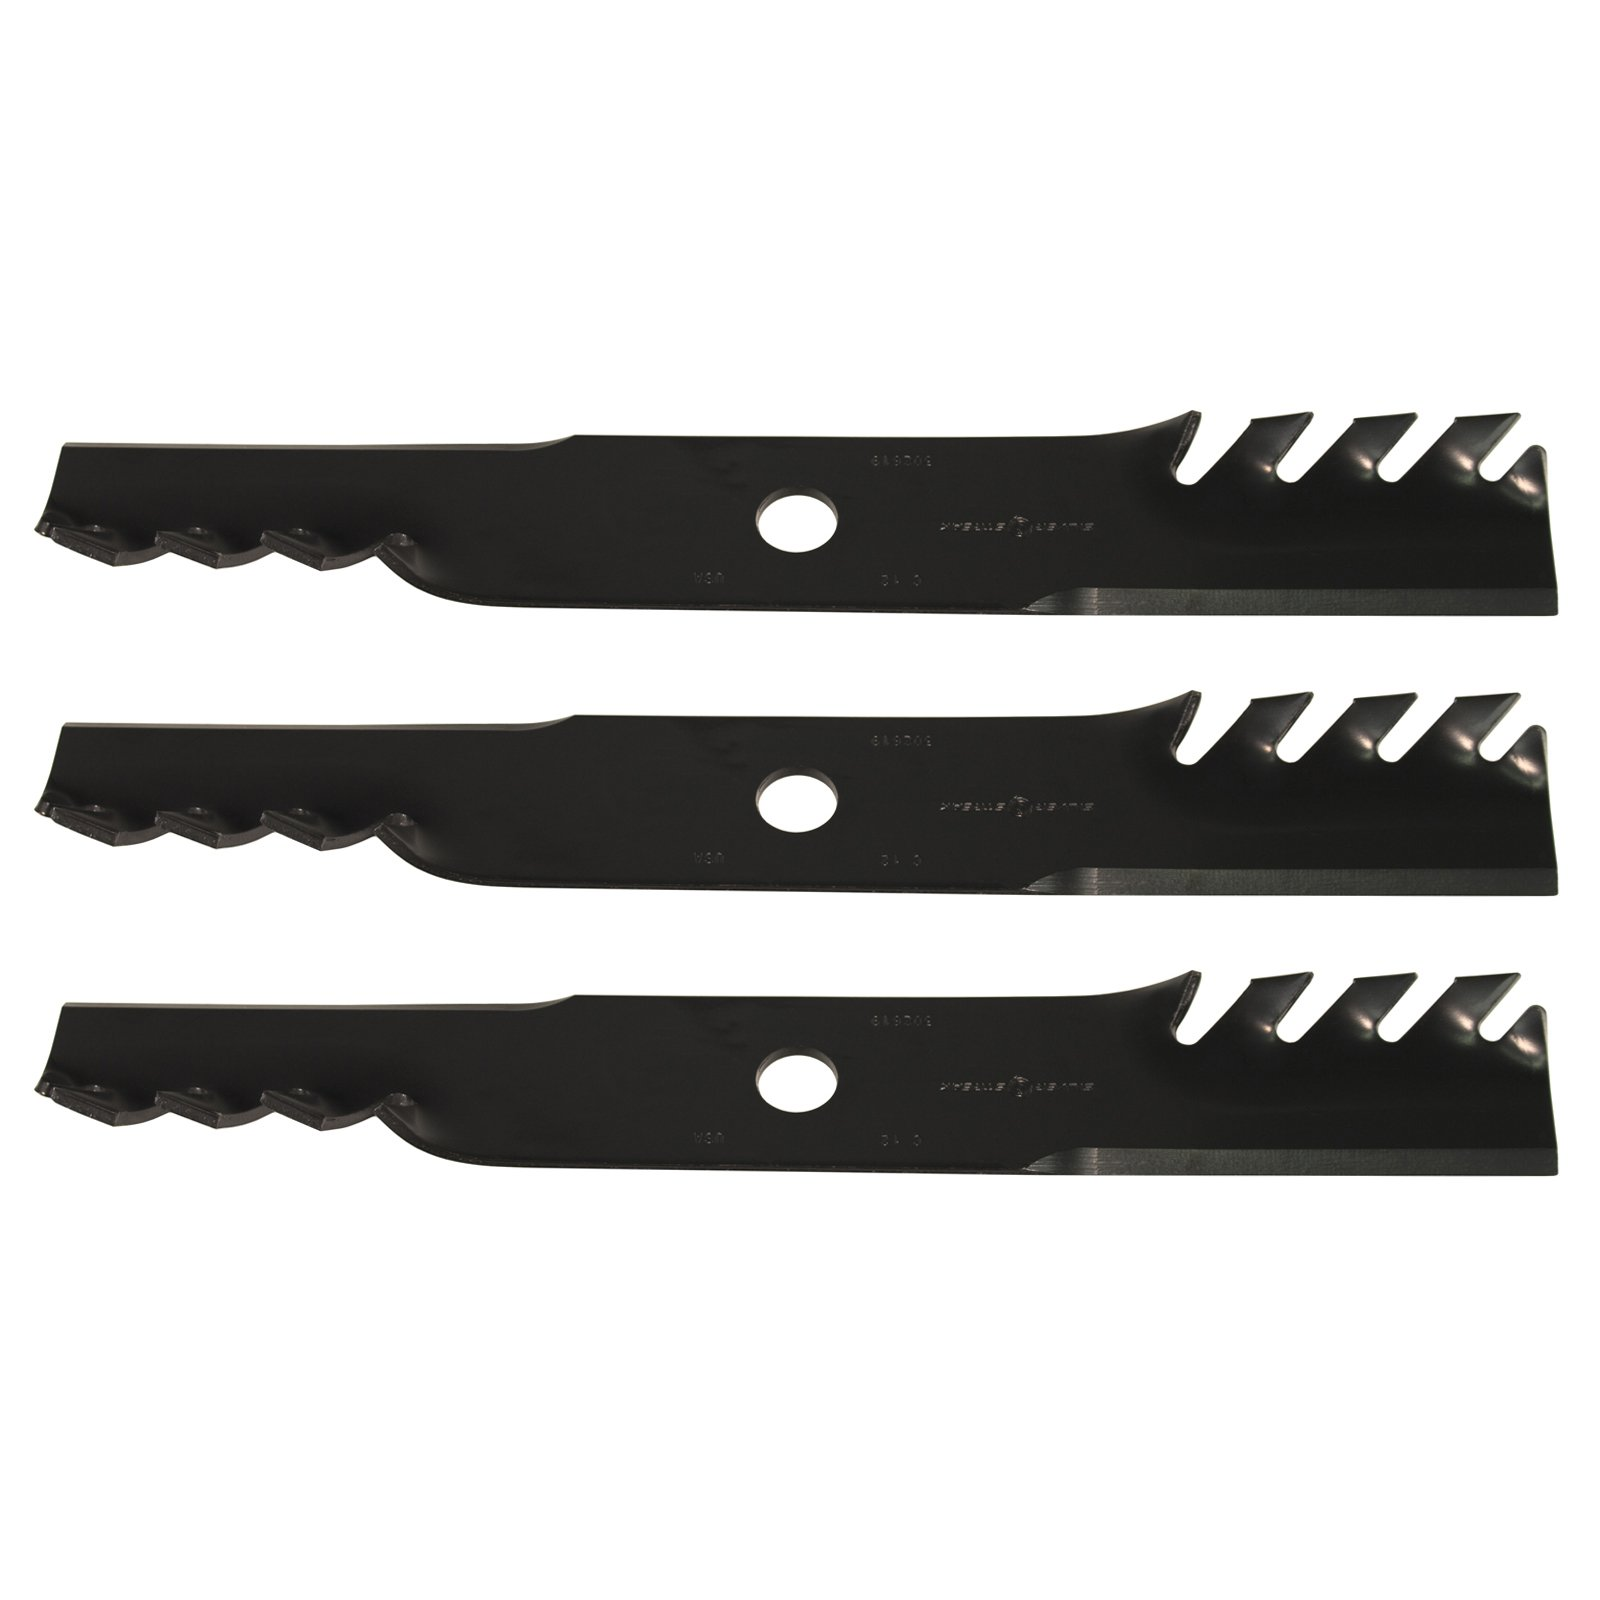 "USA Mower Blades (3) Toothed for Exmark 103-6382, Toro 109-6873 36"" 52"" Deck"